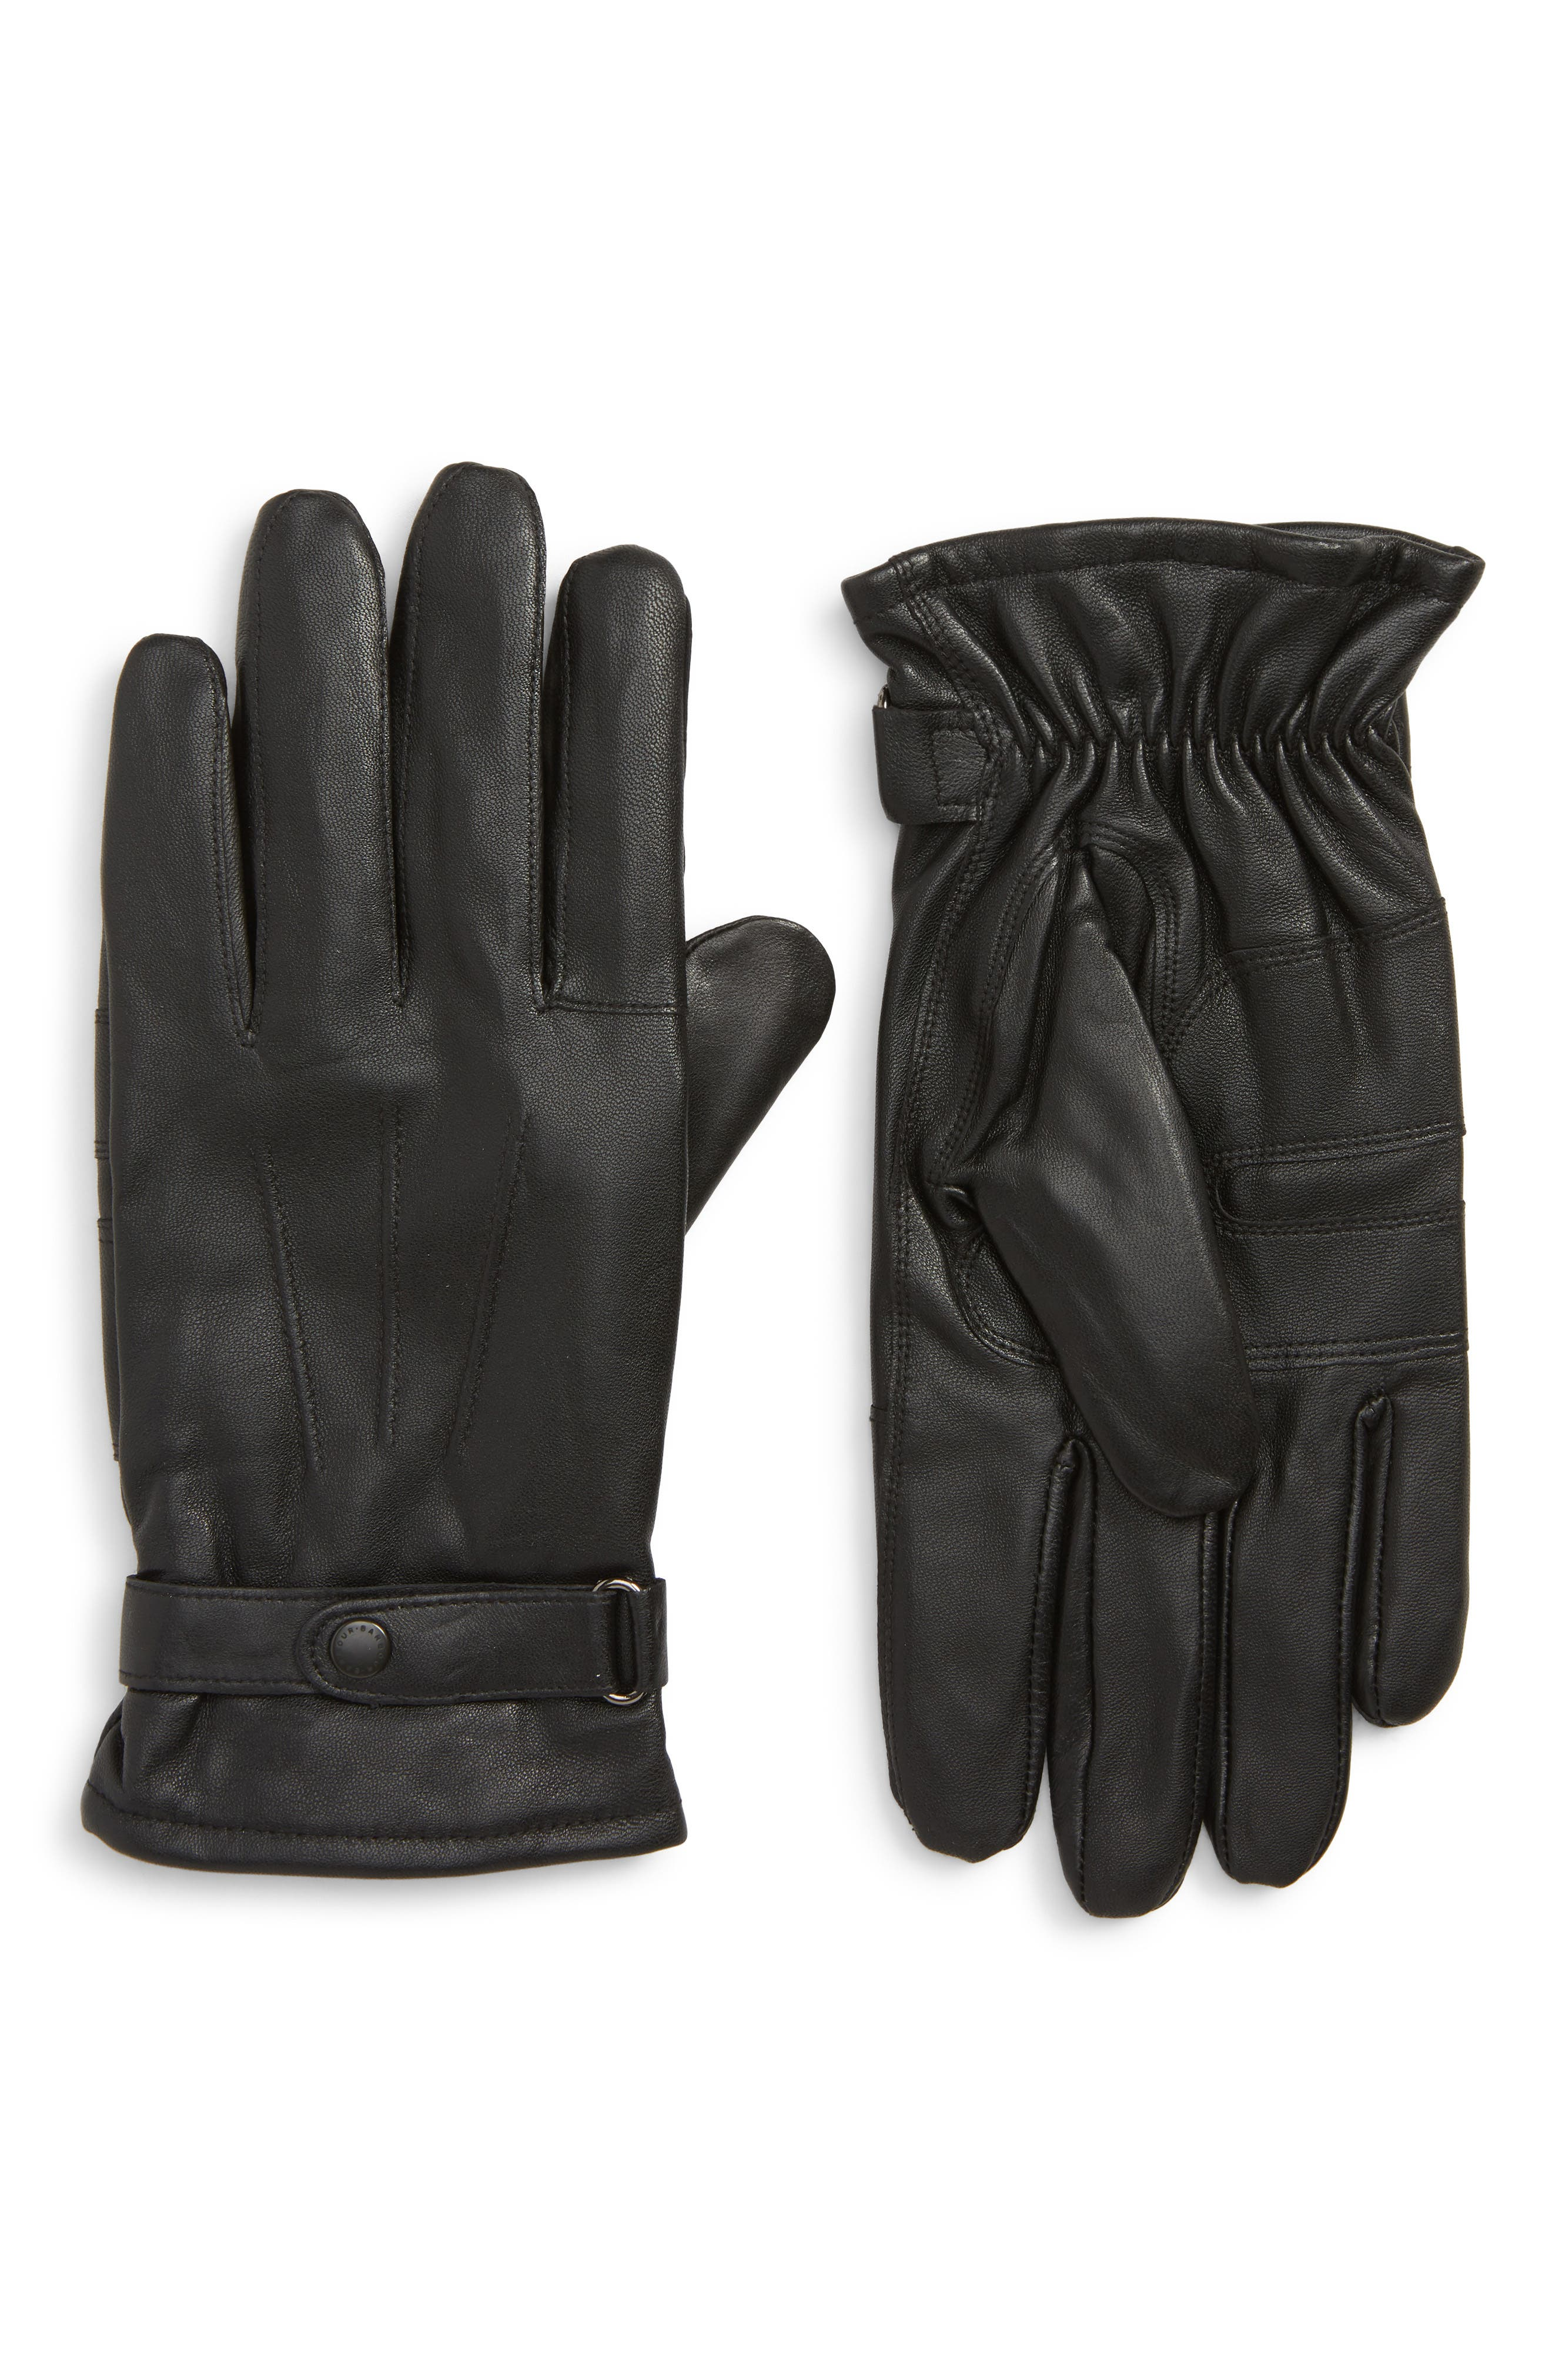 Burnished Leather Gloves,                             Main thumbnail 1, color,                             001